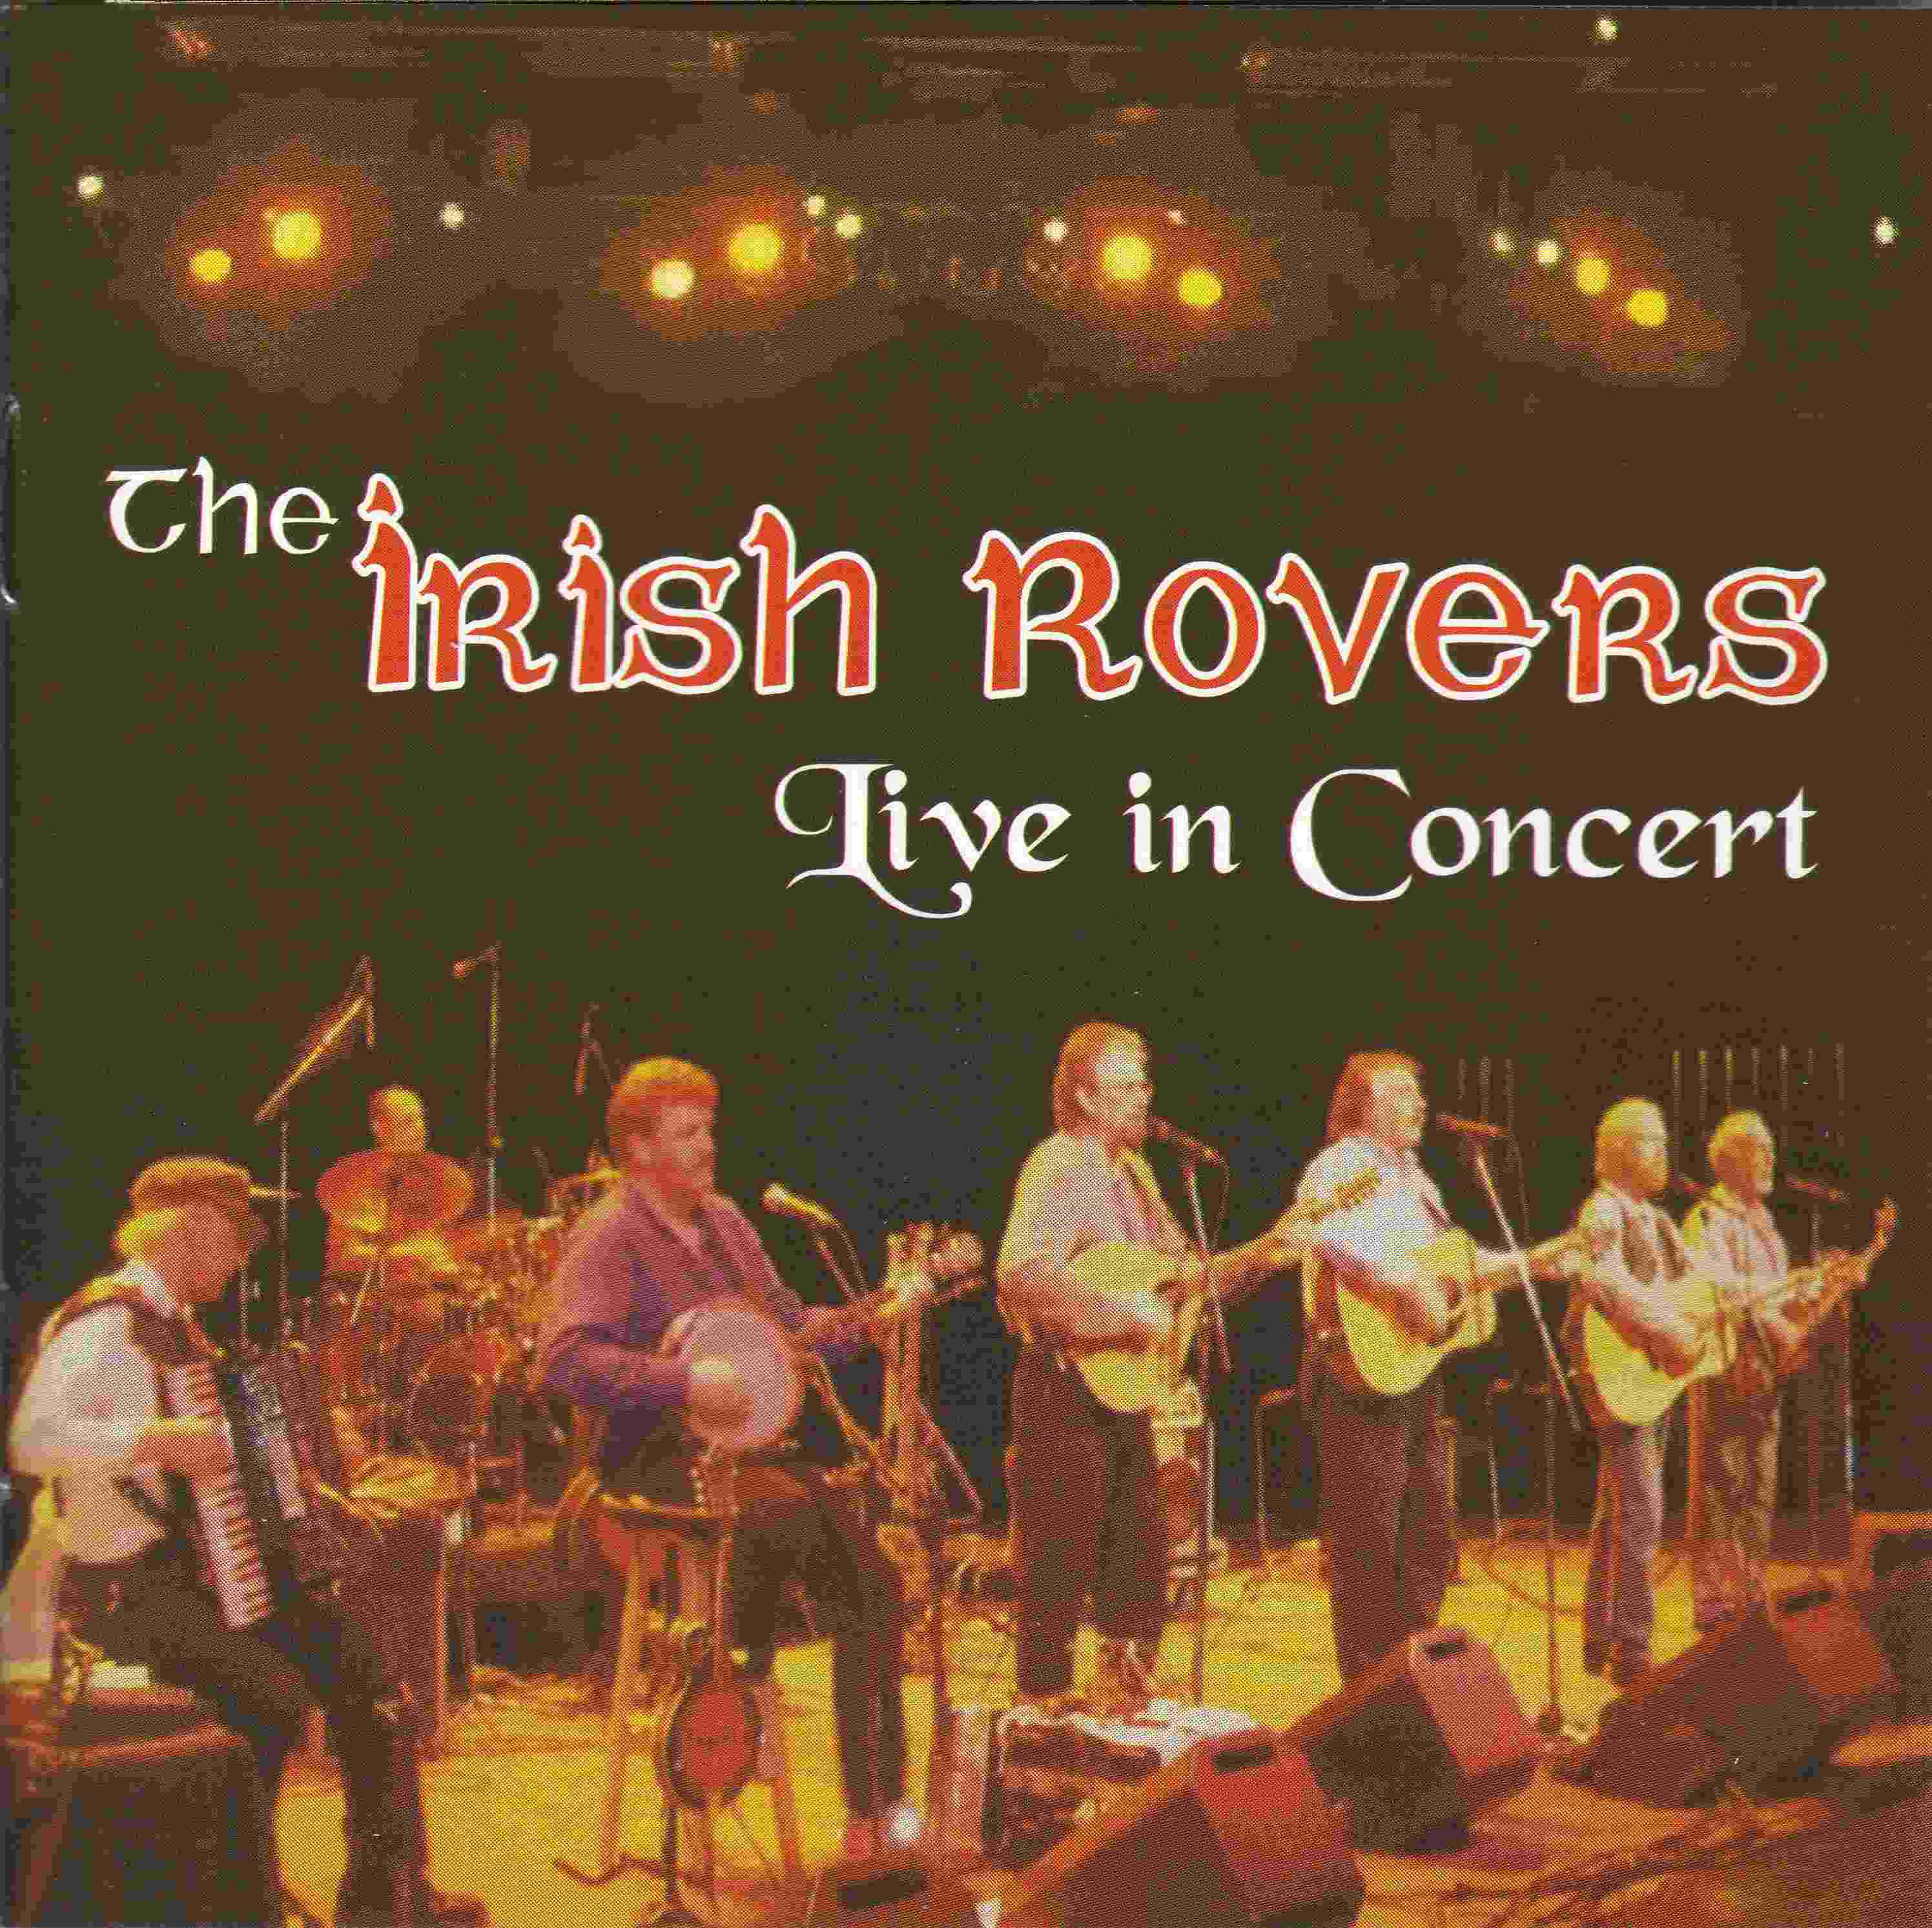 The Irish Rovers album cover - Live in Concert